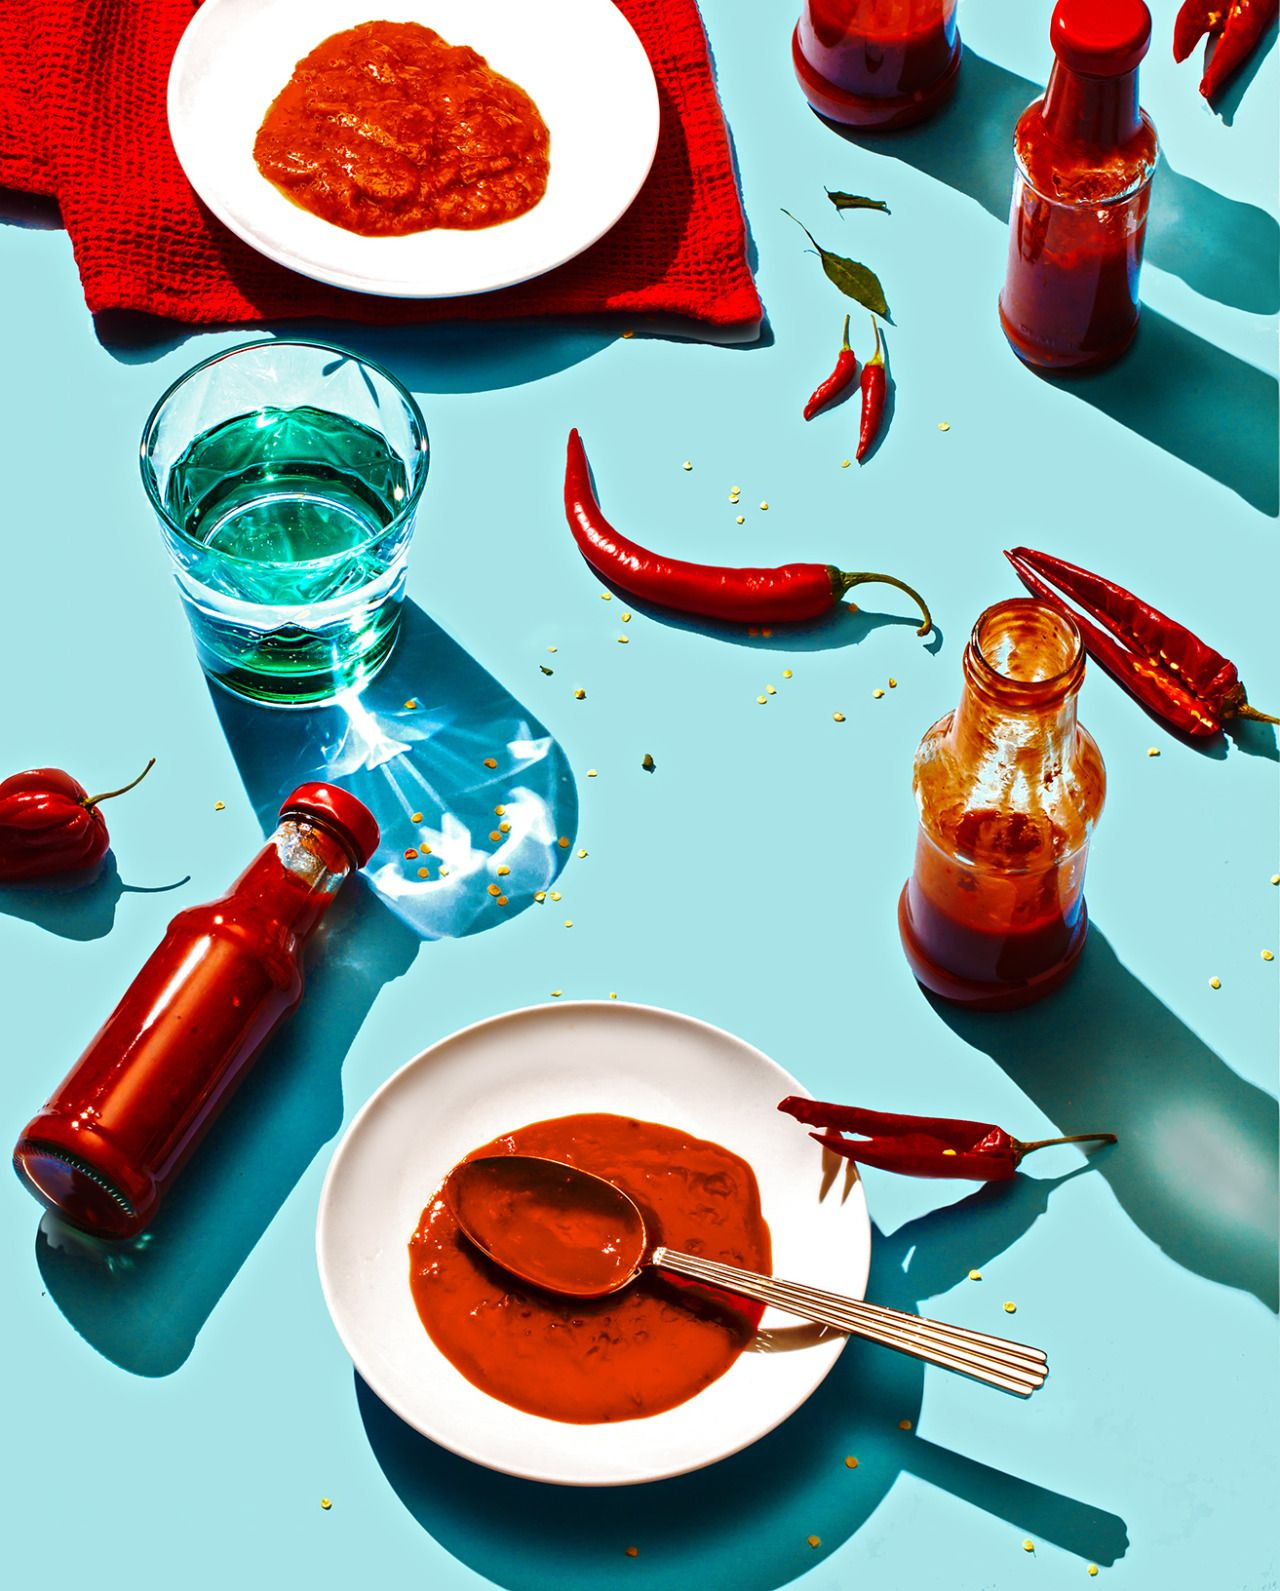 art direction | food styling still life photograhy - Hot Sauce, USA for Fast Company Food photography, food styling #artdirection